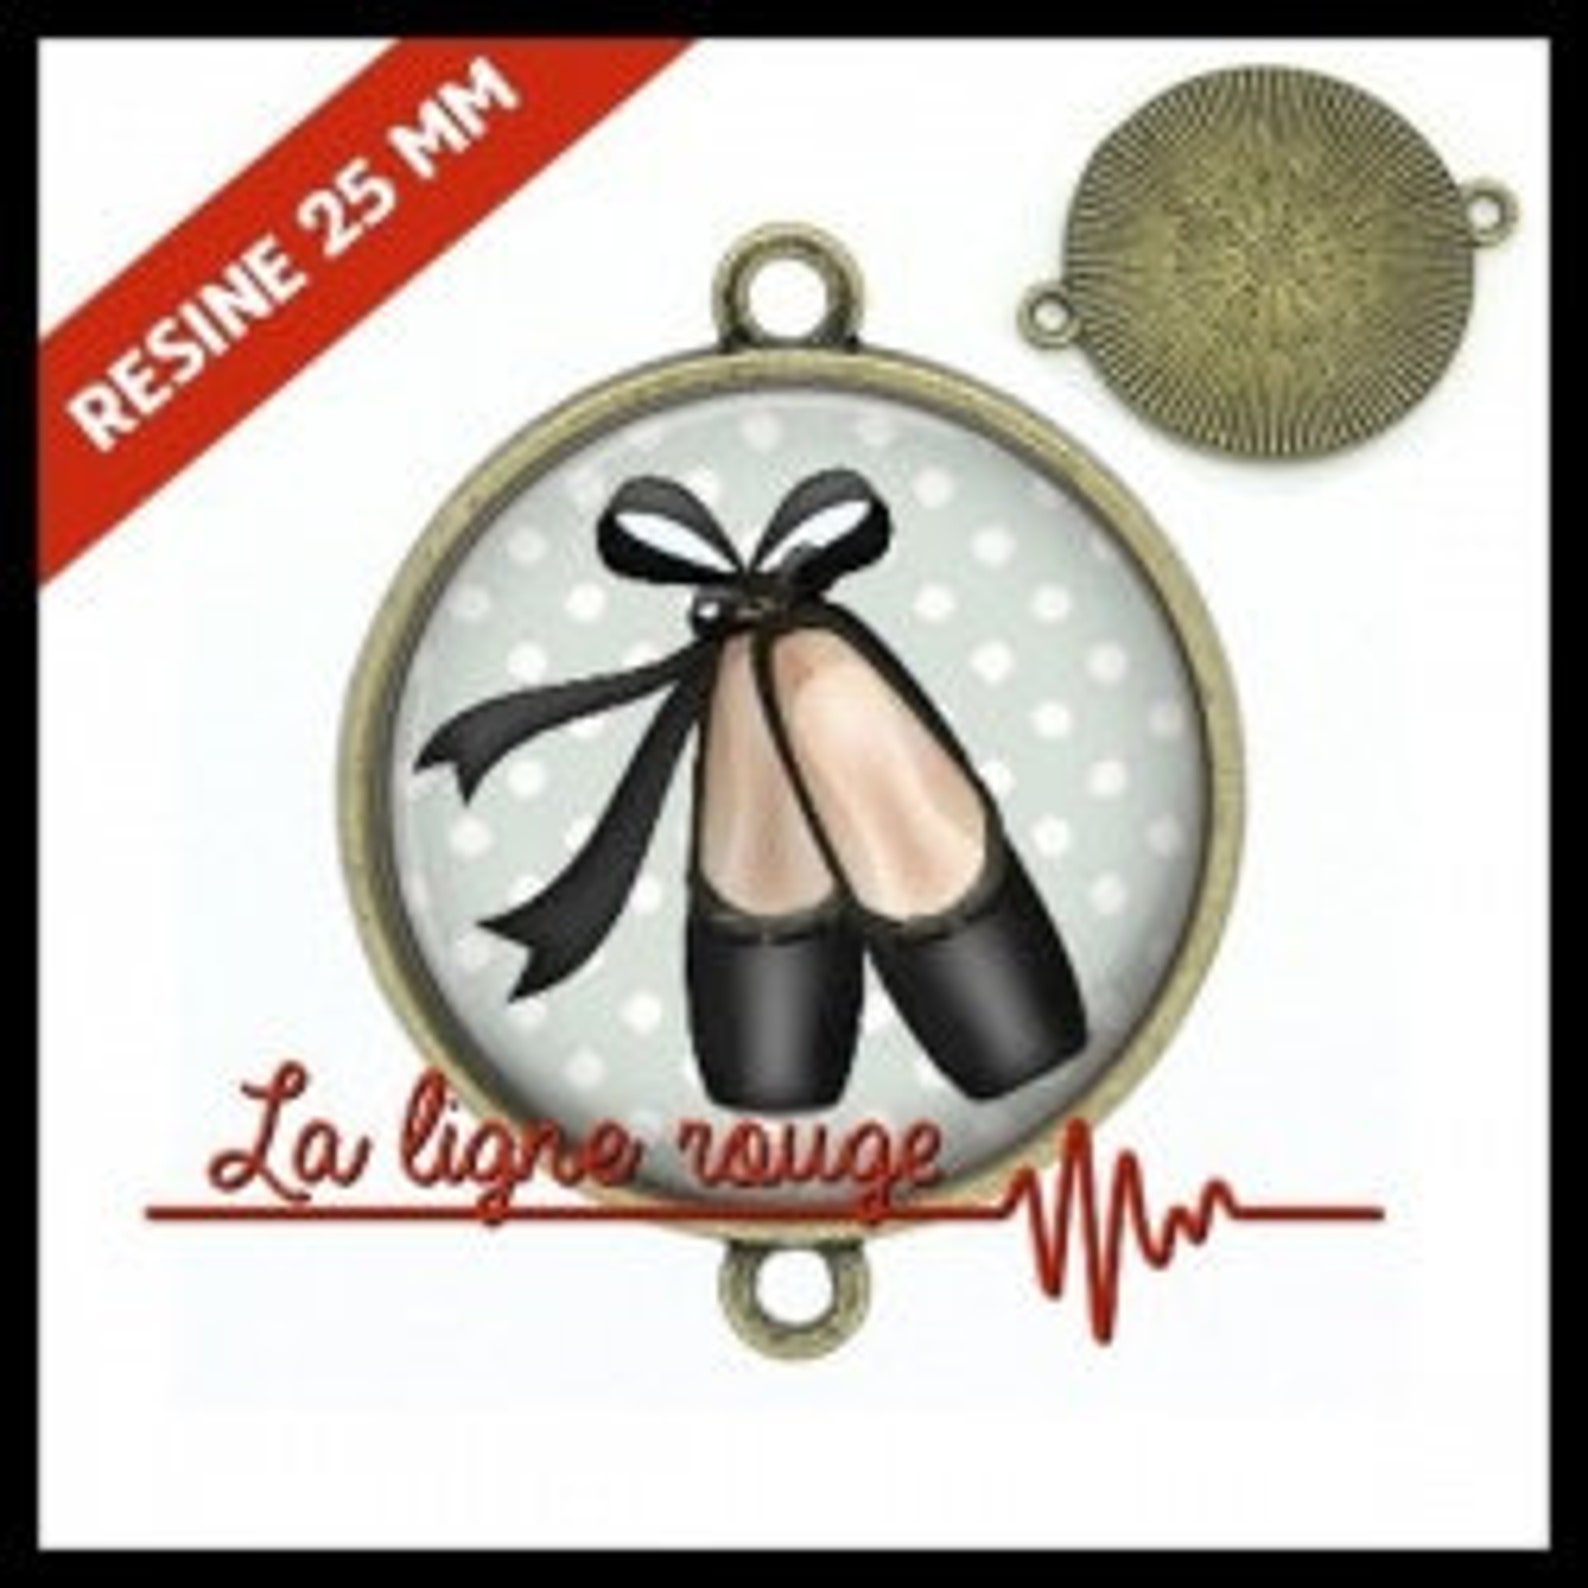 to choose from-with or without support cabochon, resin or glass, silver or bronze - ballet shoes (9297) - gift birthday christma